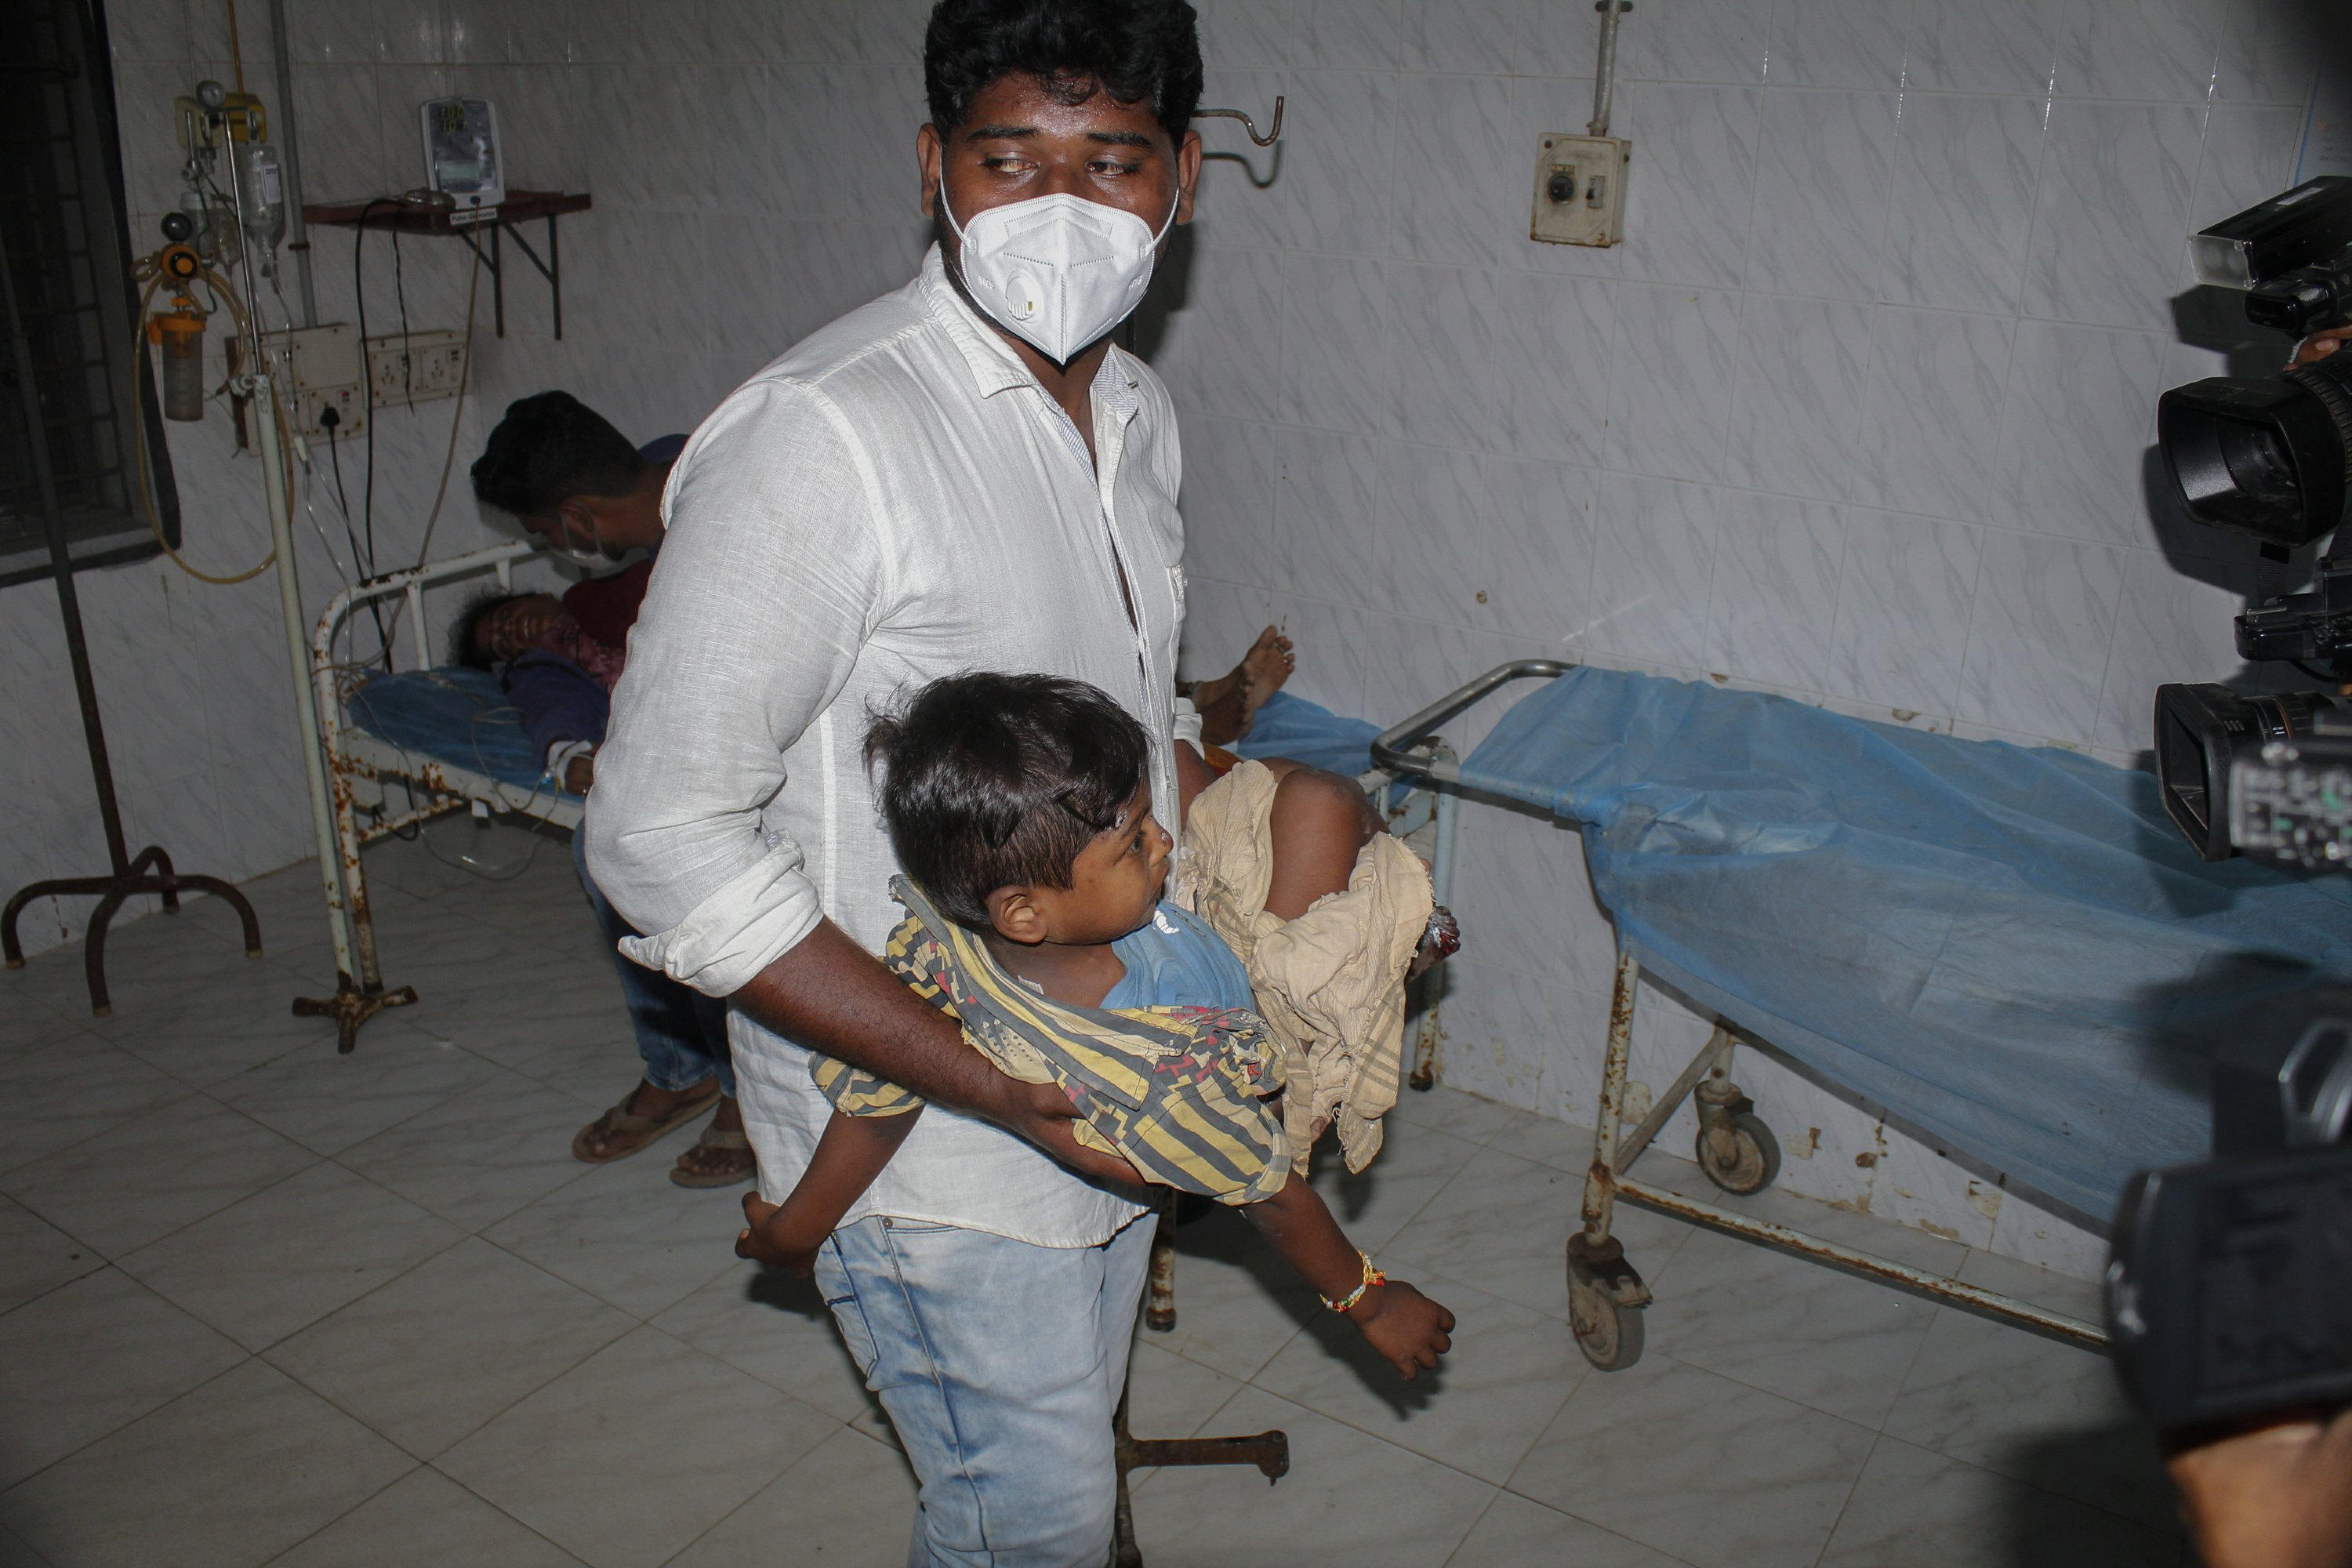 India experts find traces of lead, nickel in patients' blood